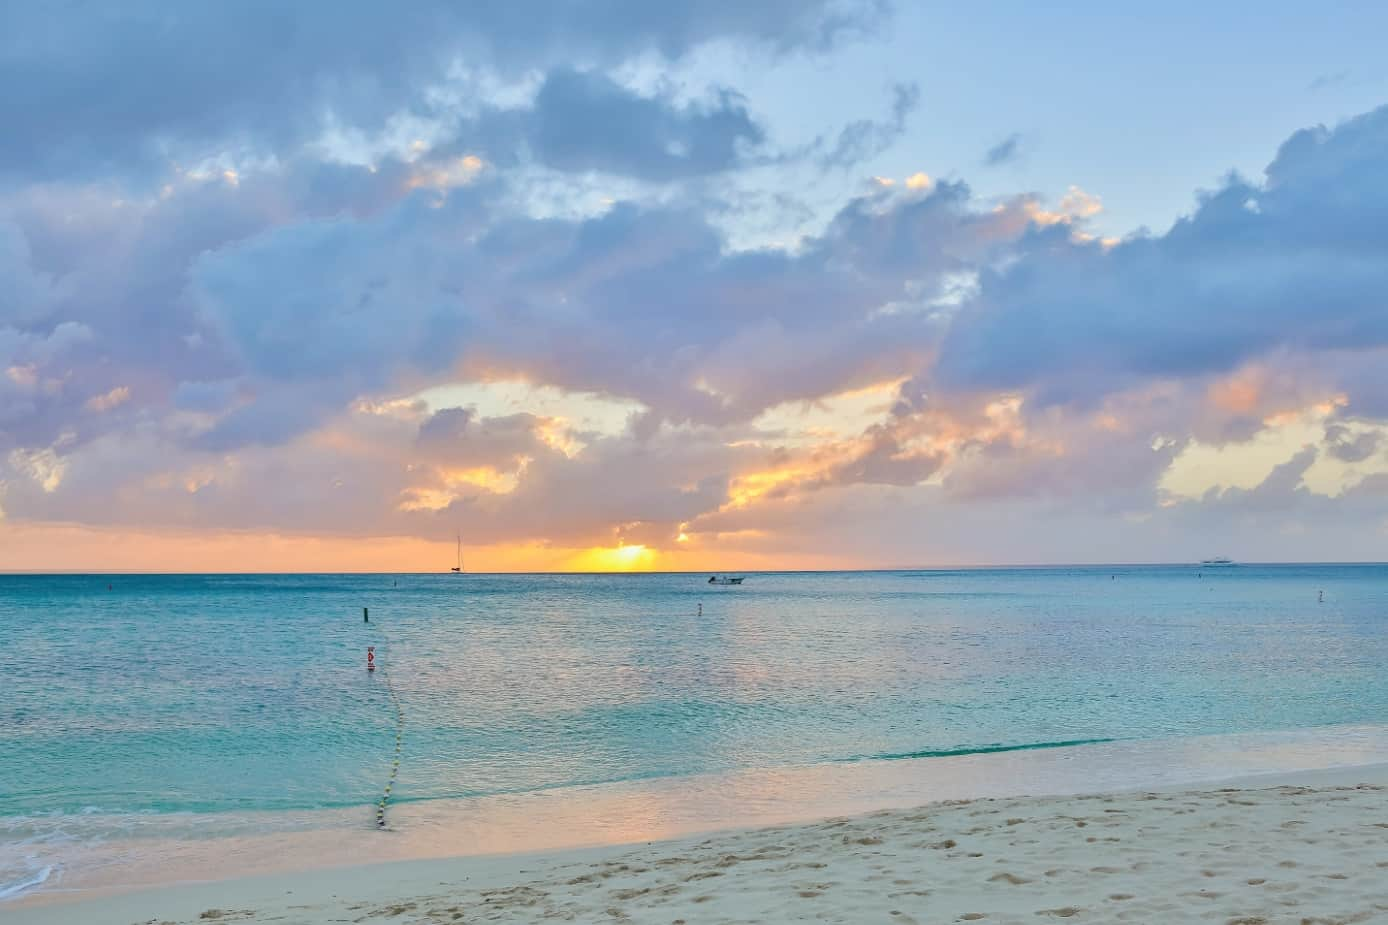 sunset-dinner-cayman-islands-beach-reception-corporate-event-by-celebrations-ltd